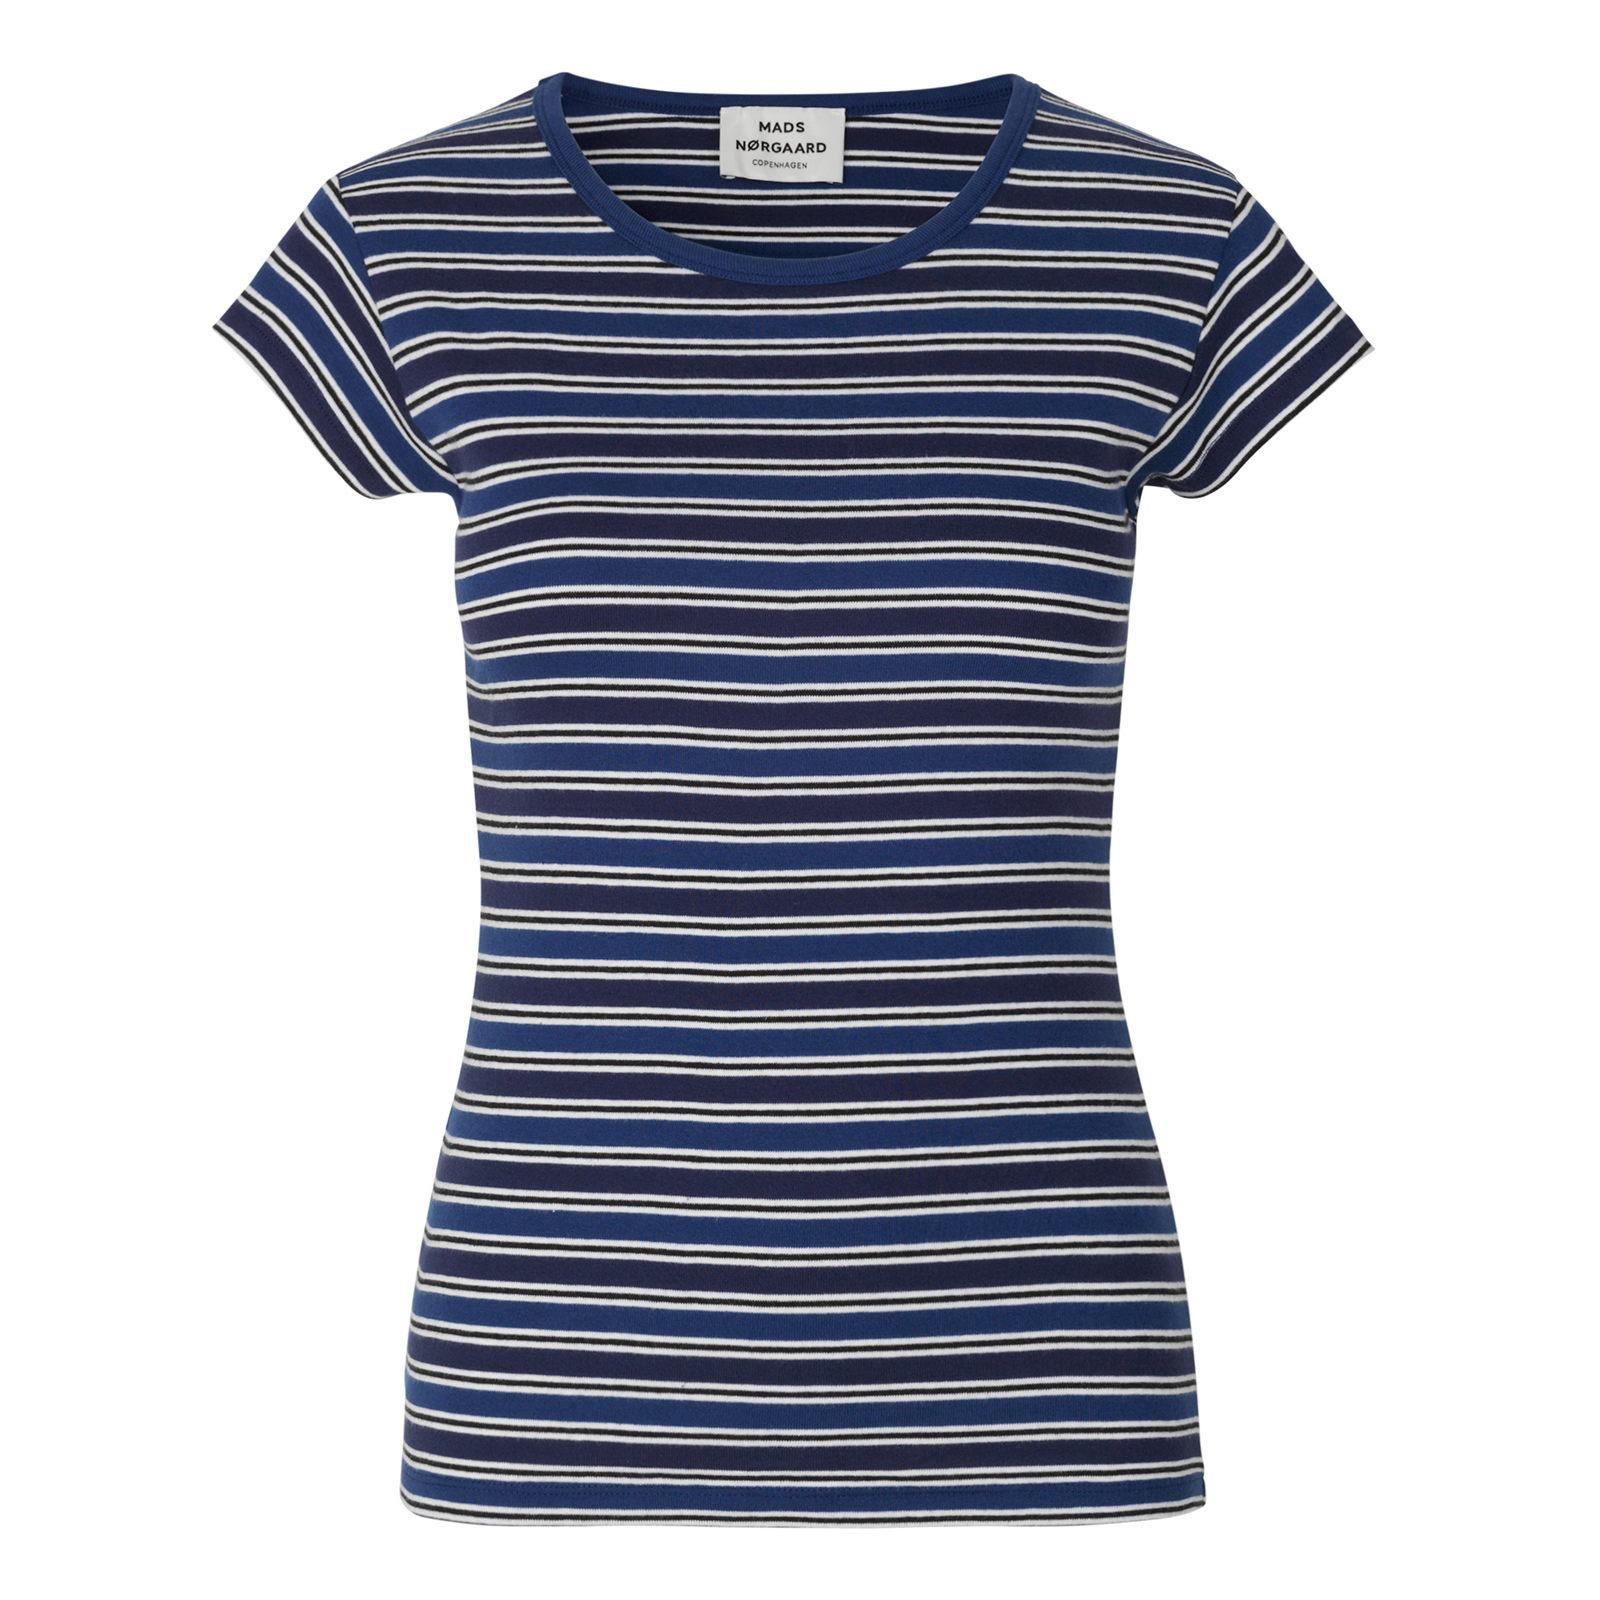 MADS NØRGAARD T-SHIRT - TRAPPY STRIPE NAVY/DARK NAVY